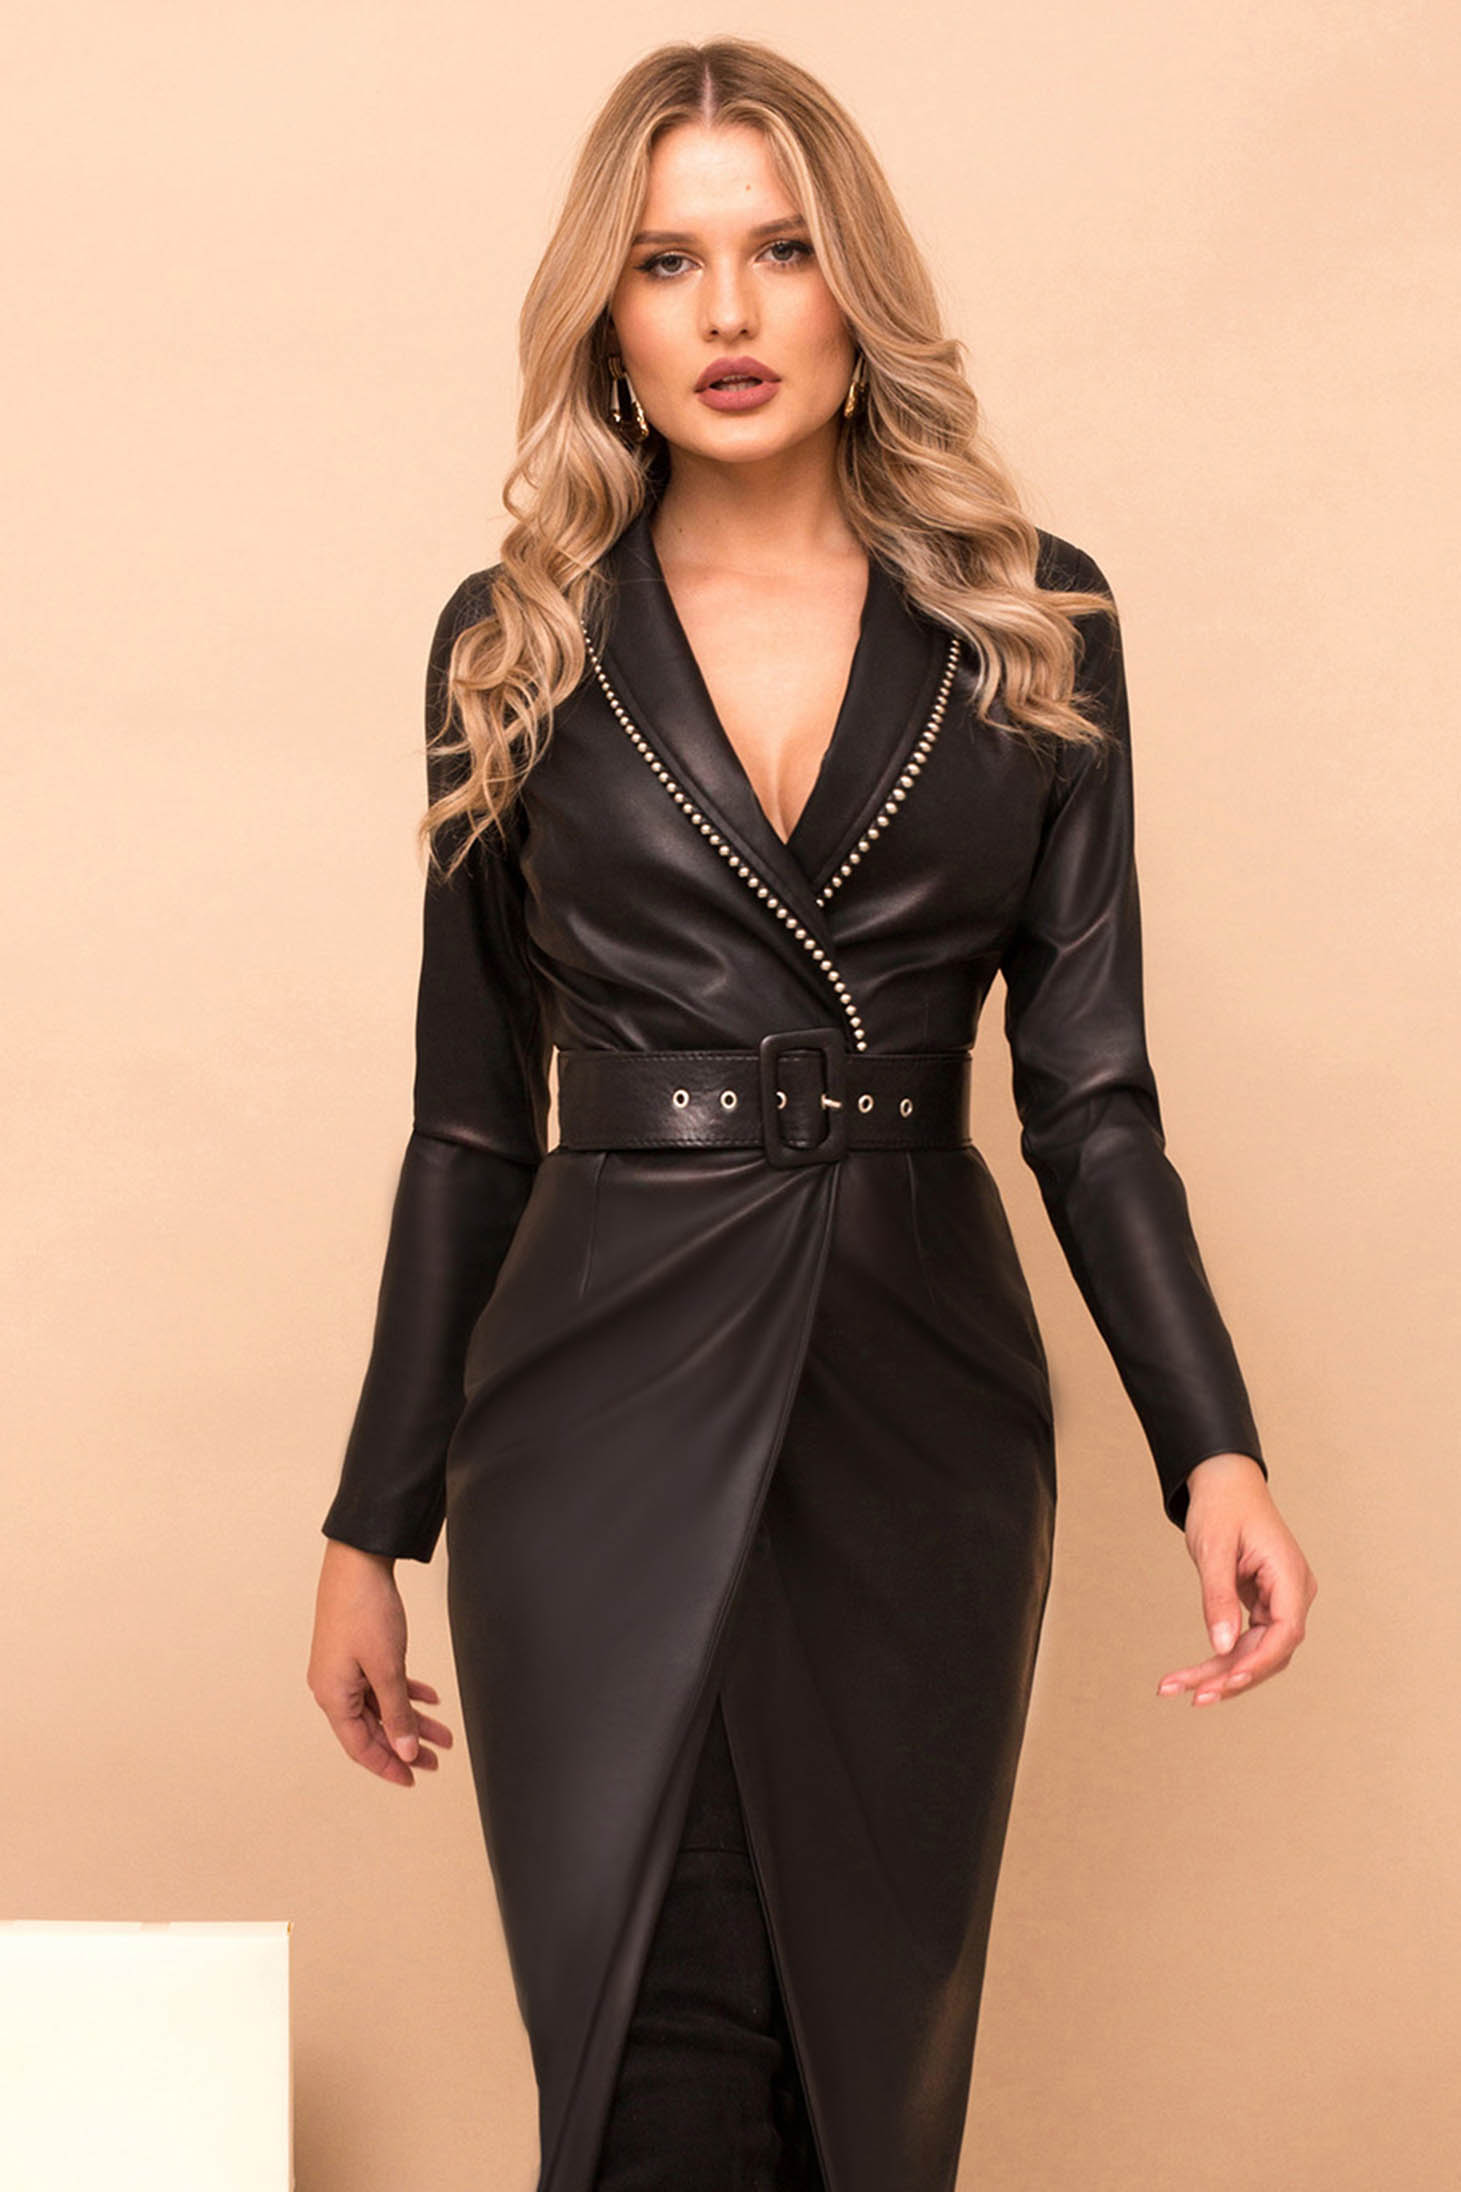 Dress black pencil midi elegant ecological leather wrap around accessorized with belt golden metallic details with v-neckline long sleeved